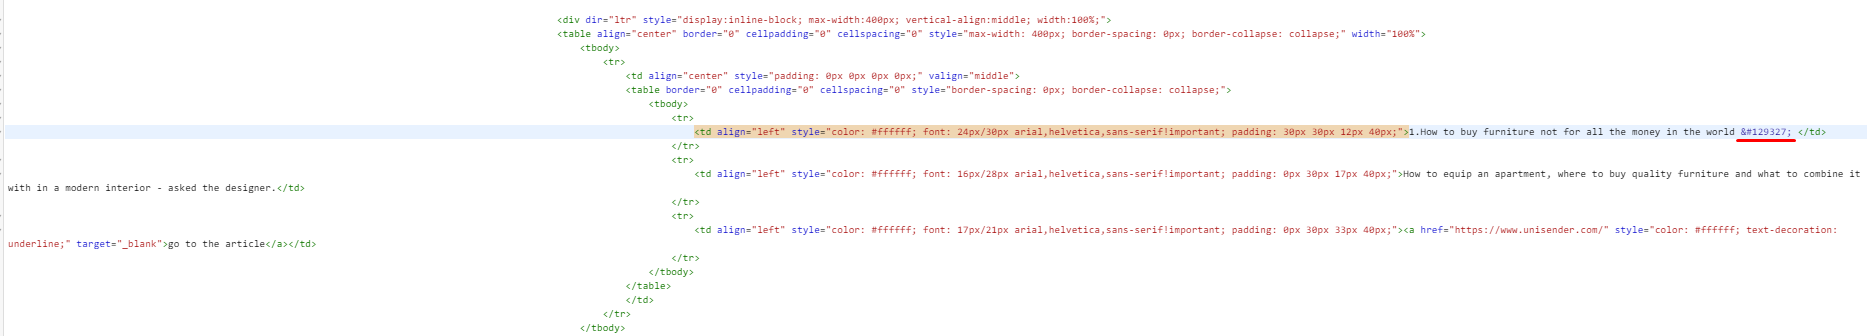 Paste the HTML code